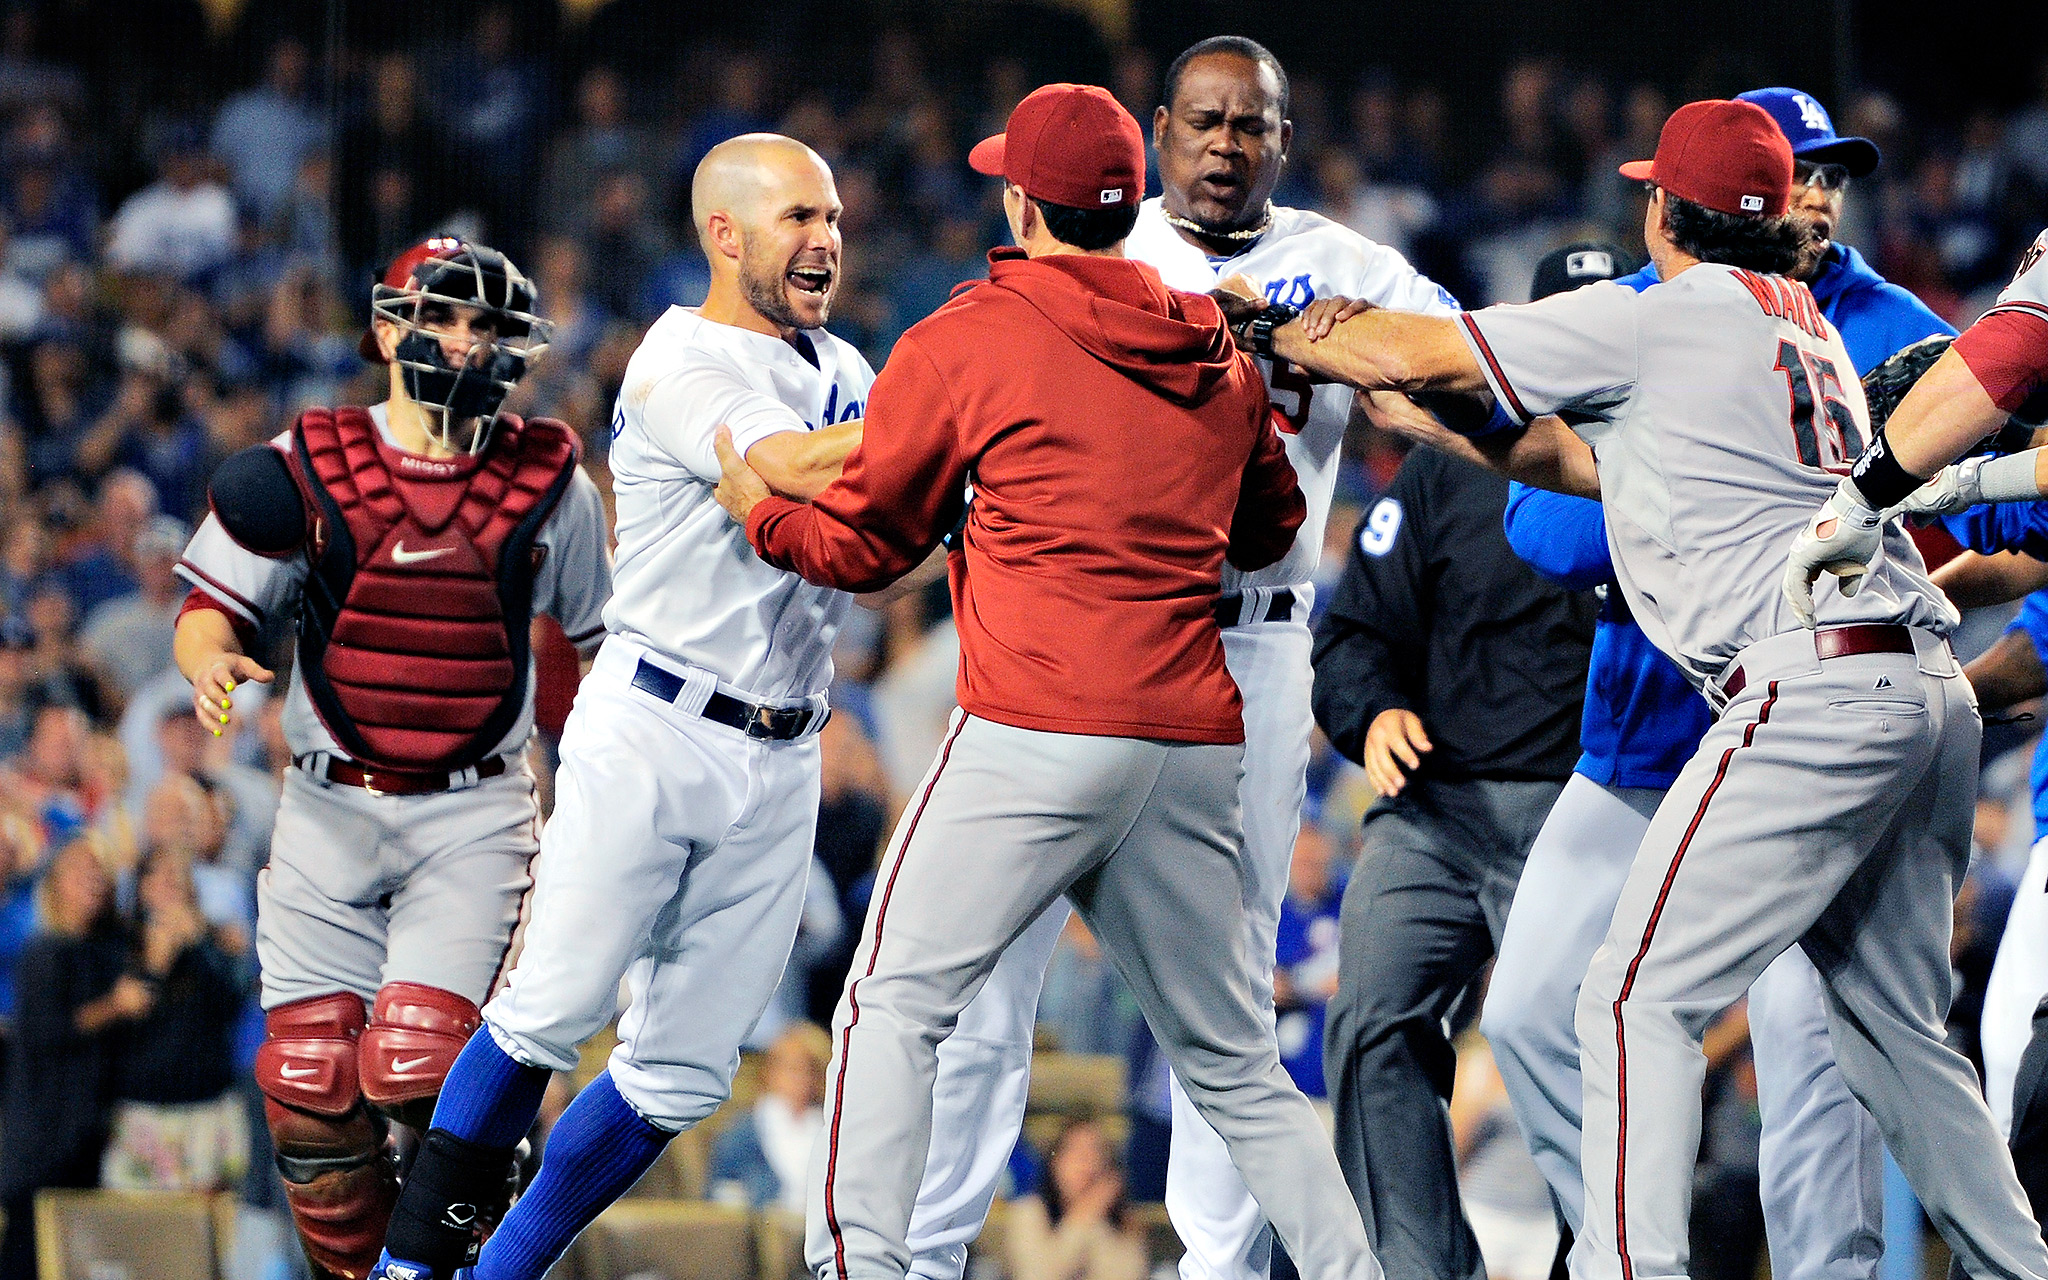 Diamondbacks-Dodgers brawl